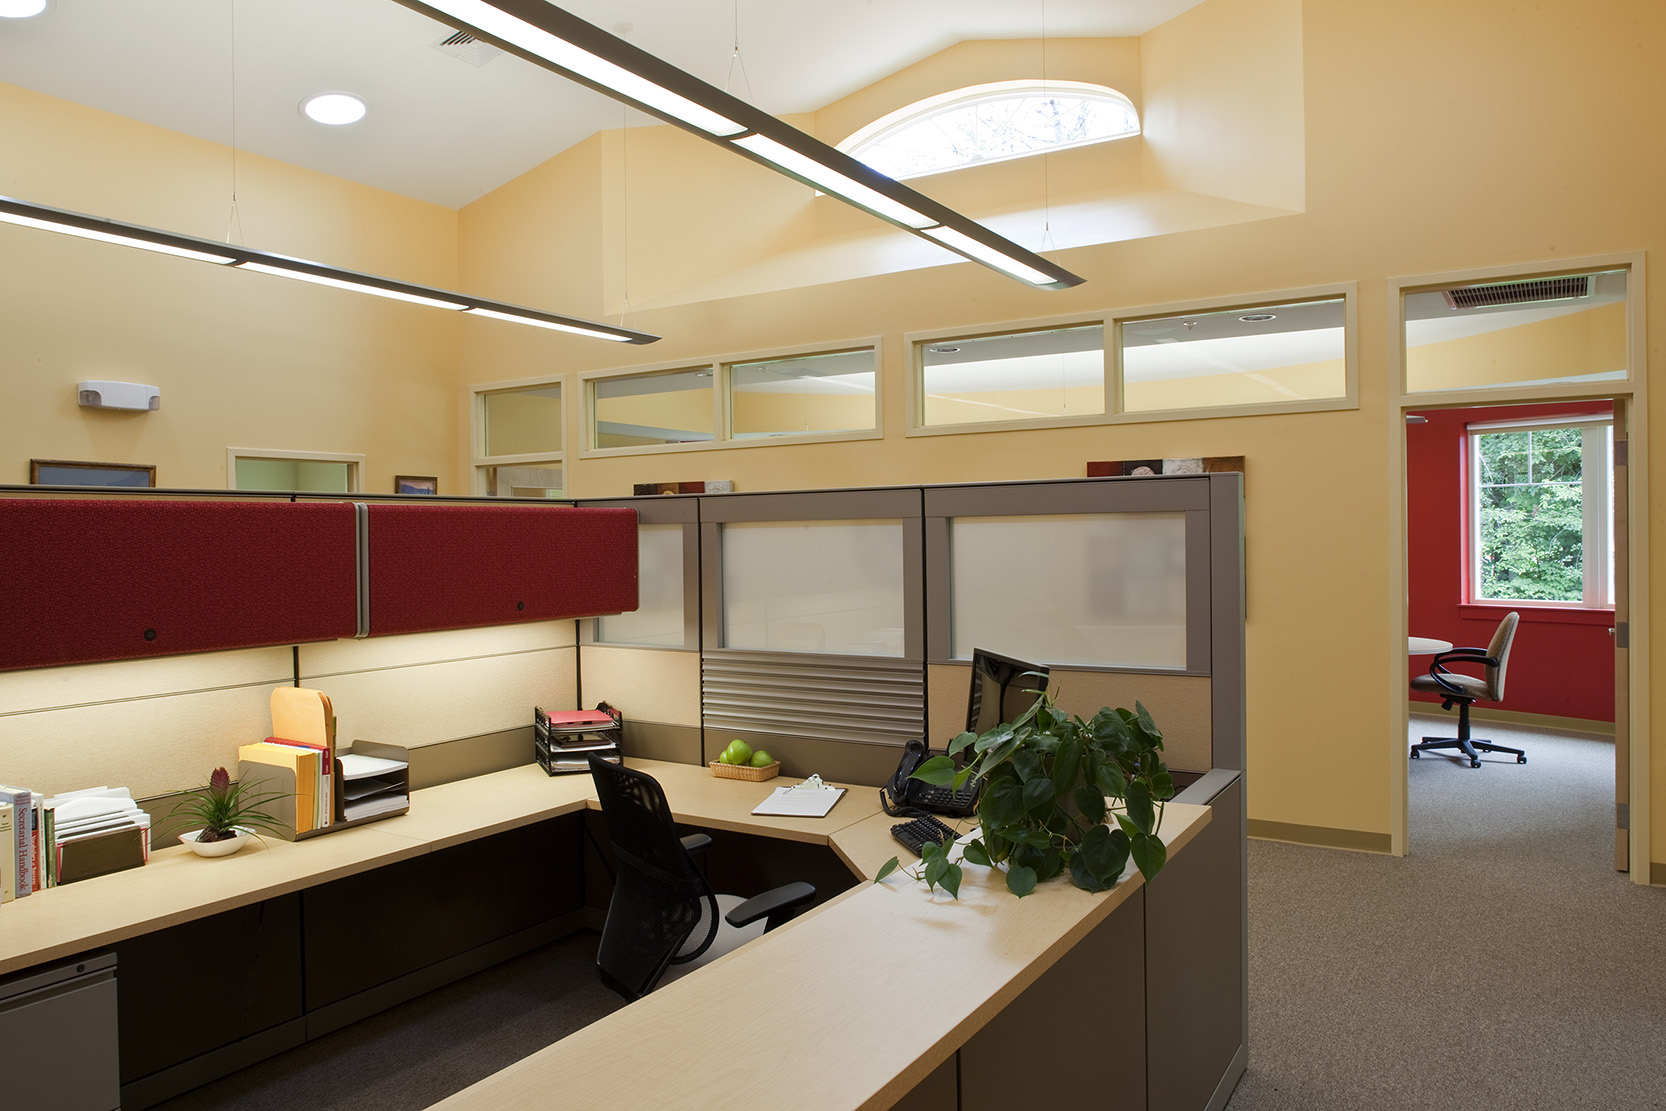 Interior clerestory windows and tubular skylights direct natural light toward interior workspaces.